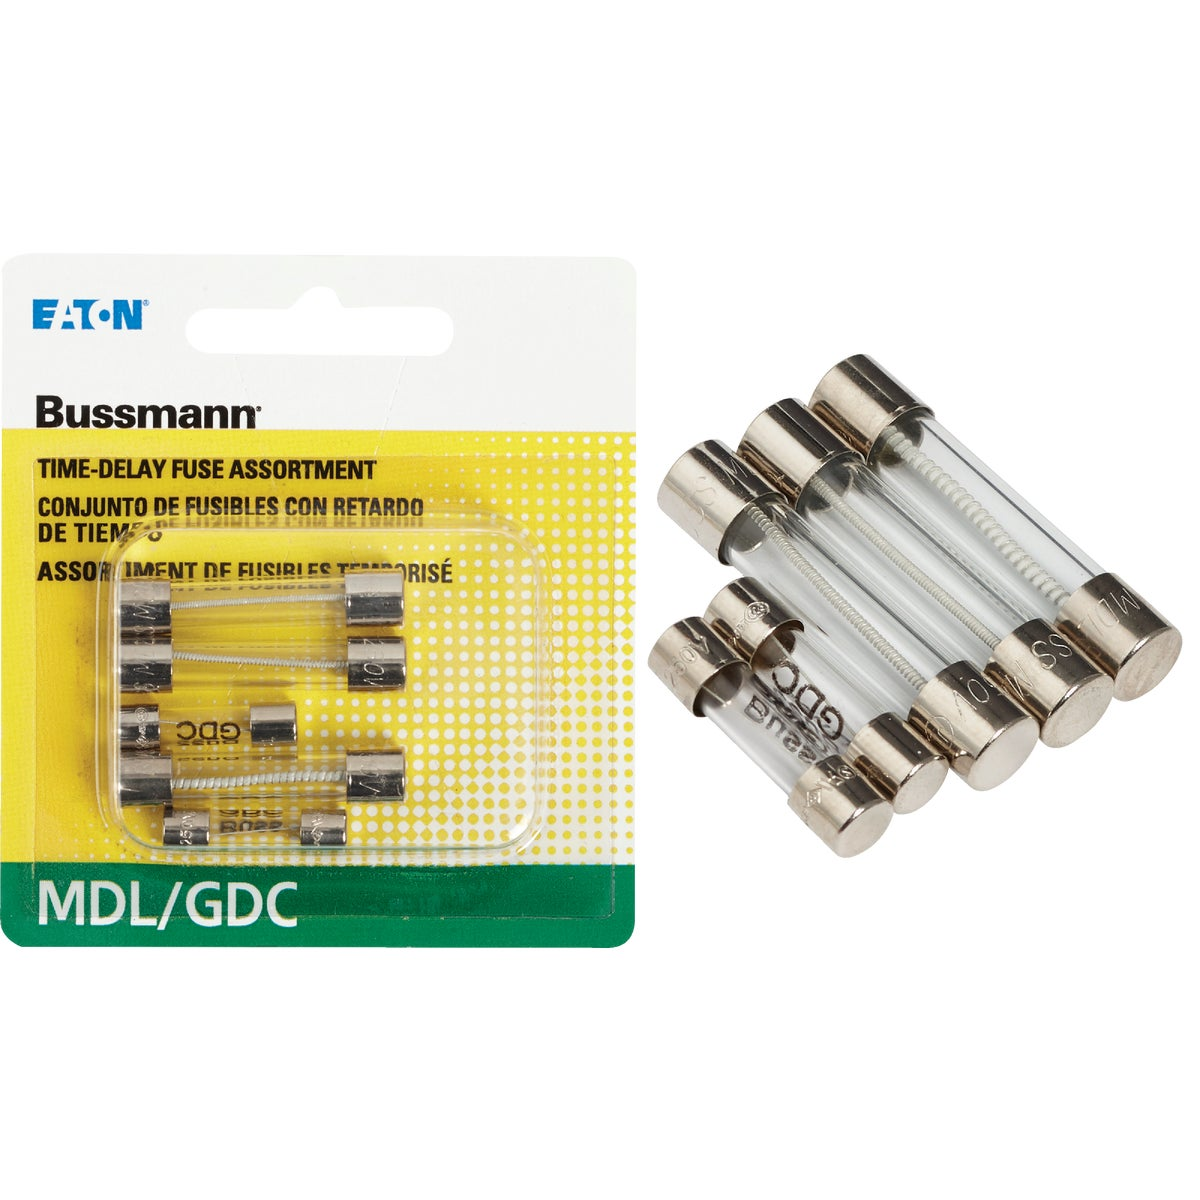 5PK ELECTRONIC FUSE - HEF-2 by Bussmann Cooper